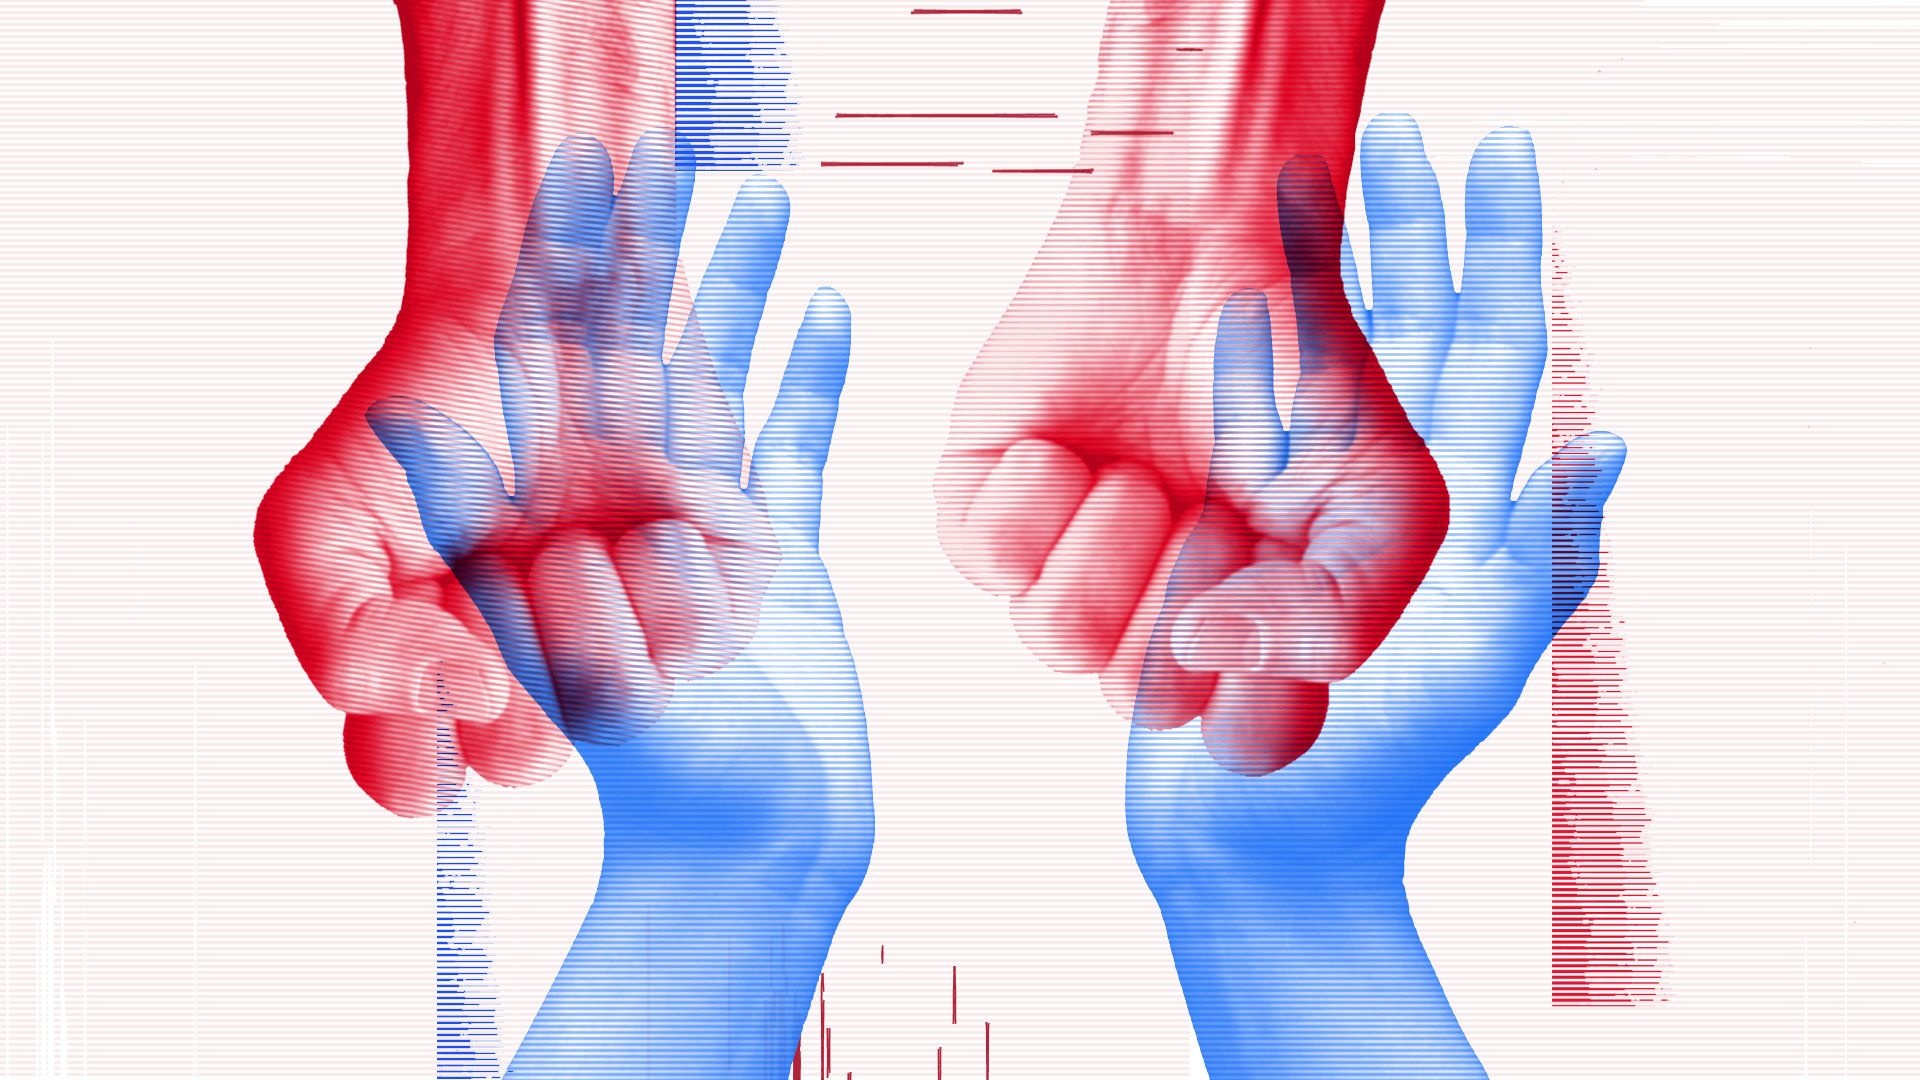 An illustration of open hands overlaid on closed fists